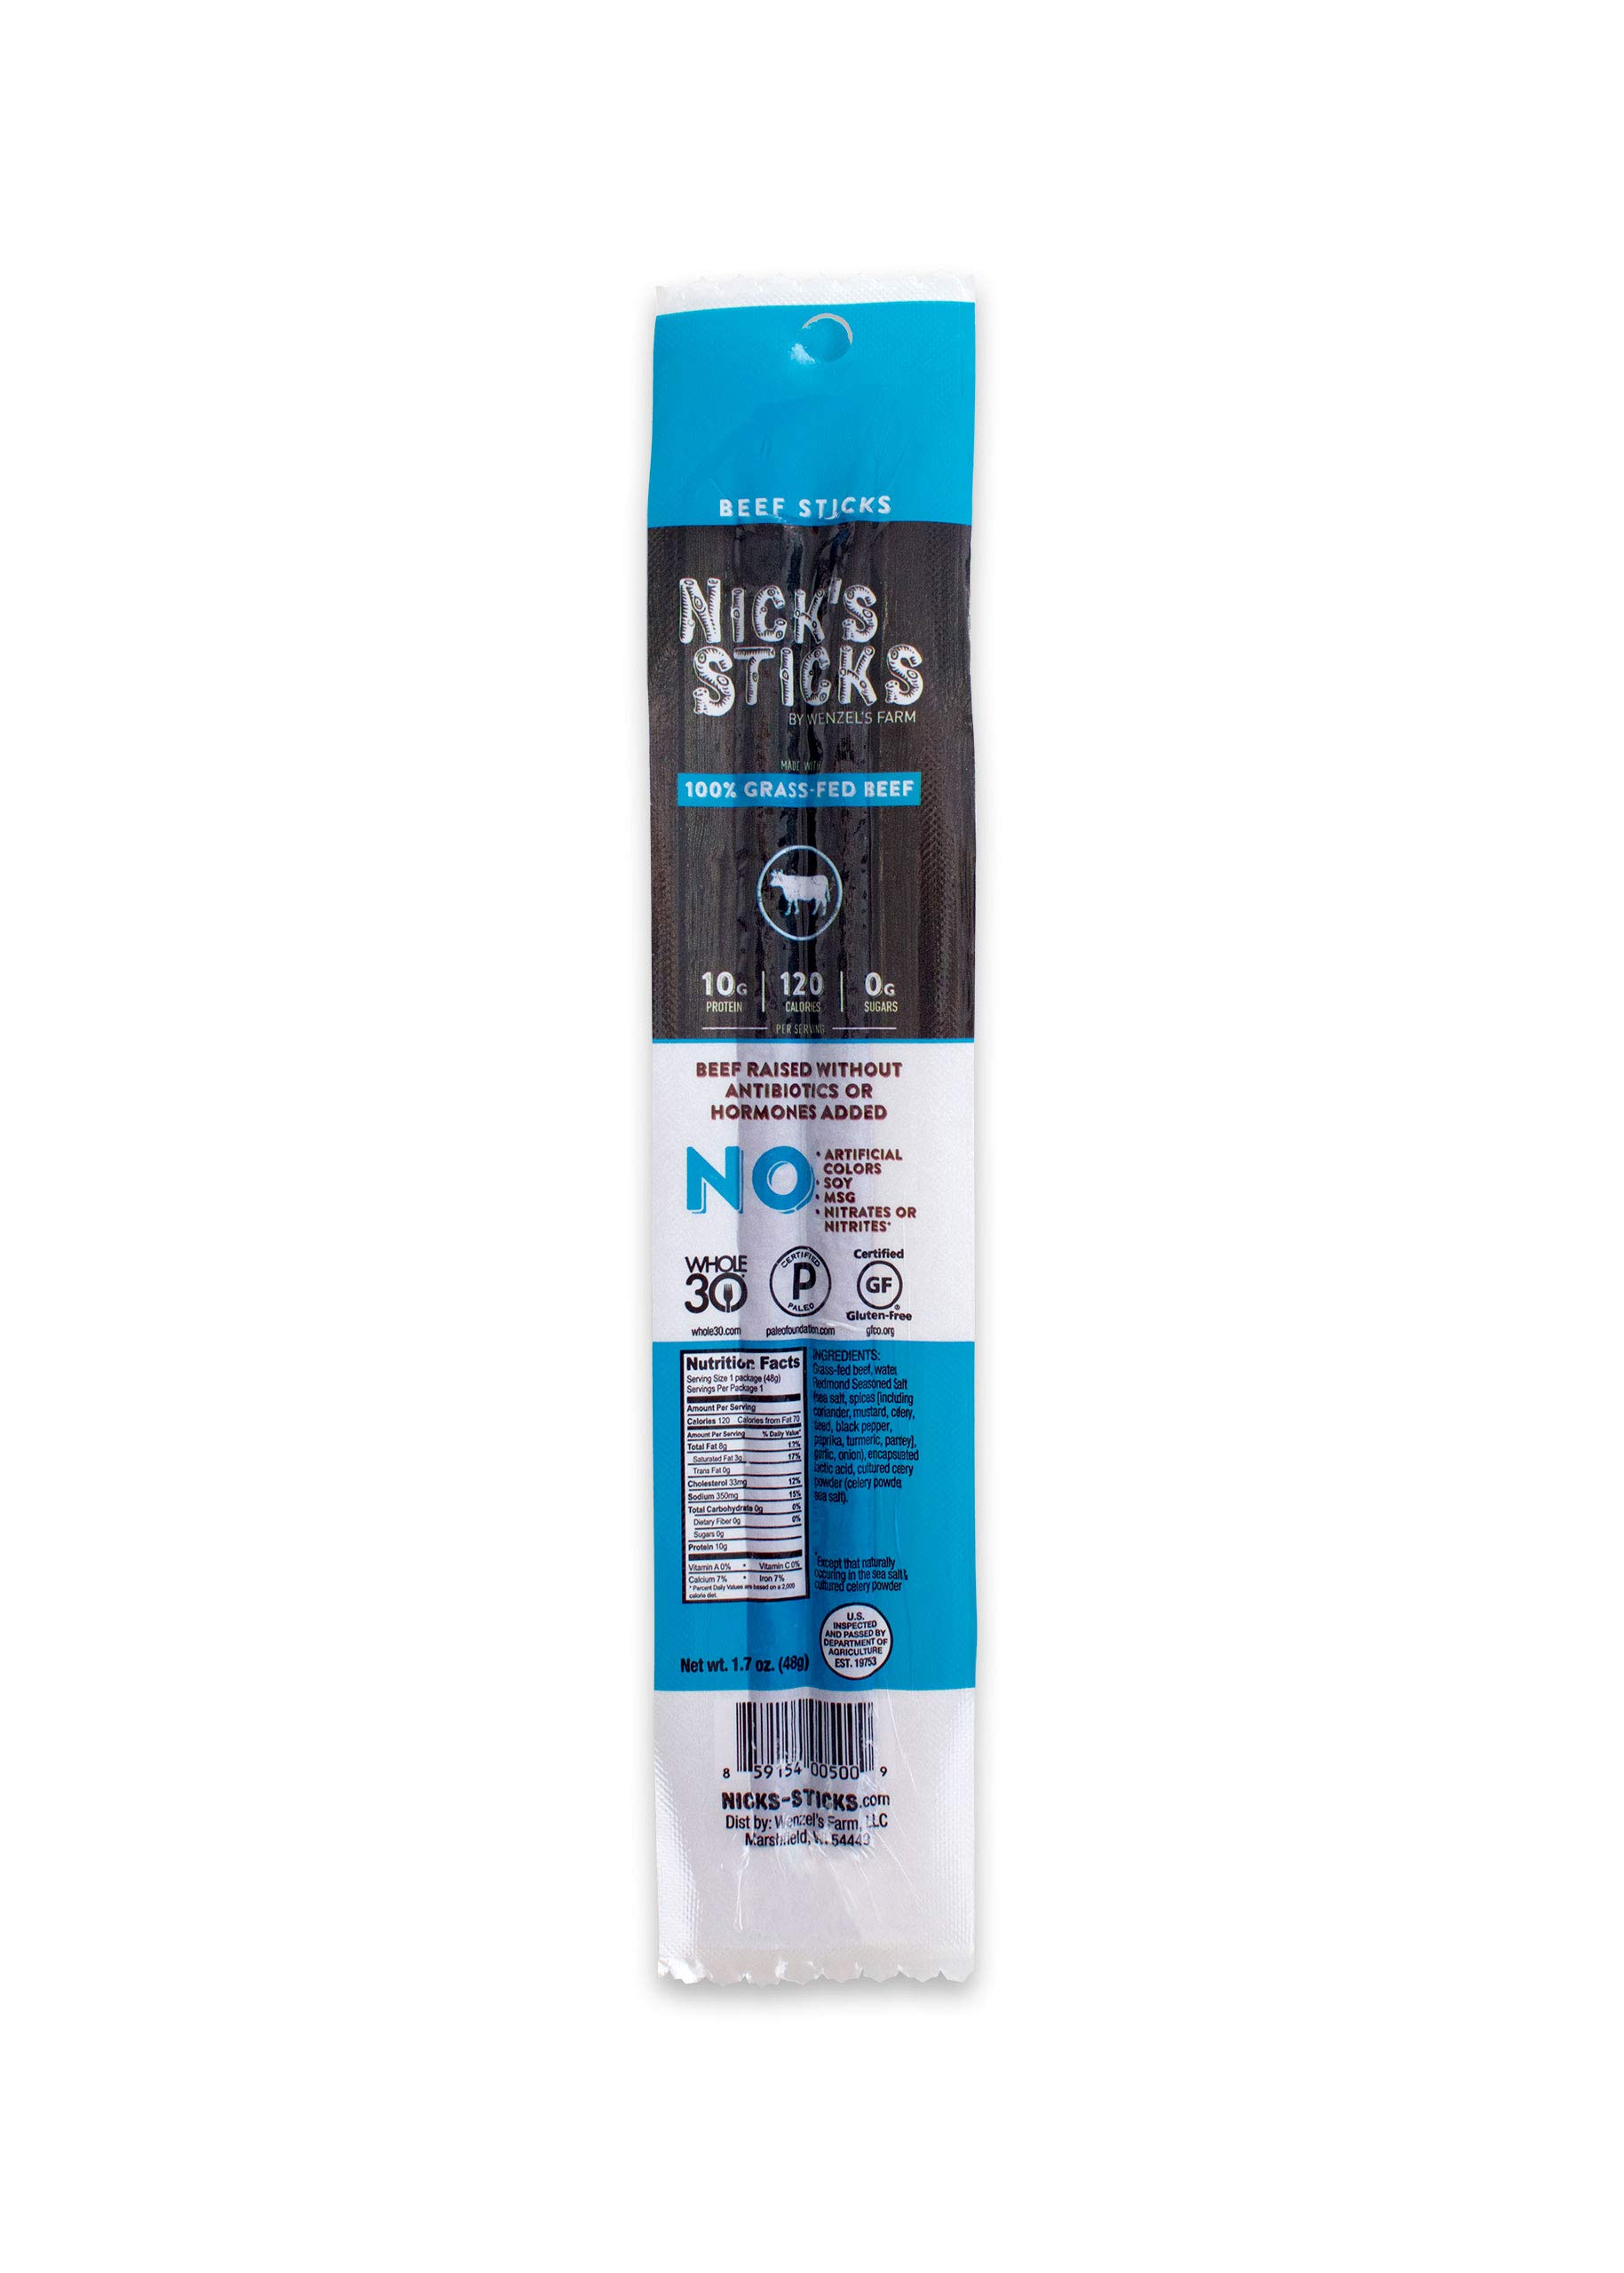 Nick's Sticks 100% Grass-Fed Beef Snack Sticks - Gluten Free - Paleo, Keto, Whole30 Approved - No Sugar, Soy, Antibiotics or Hormones (25 - 1.7oz. Packages of 2 Sticks) by Nick's Sticks (Image #4)